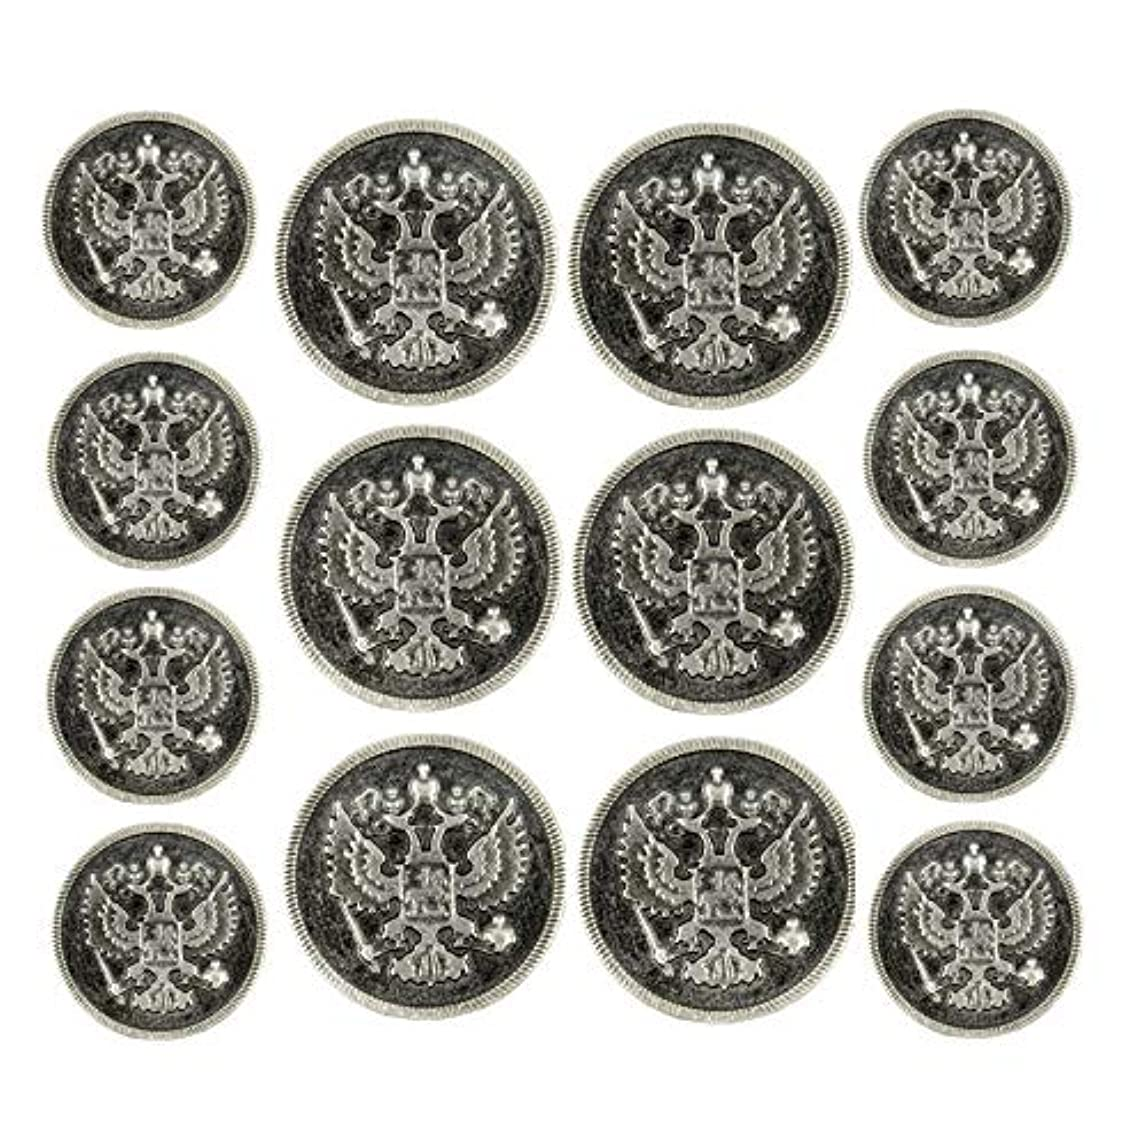 Bezelry Two-Headed Eagle Gray Silver Metal Shank Double Blazer Button Set. 6 Pcs of 23mm, 8 Pcs of 18mm eorcs95659053583